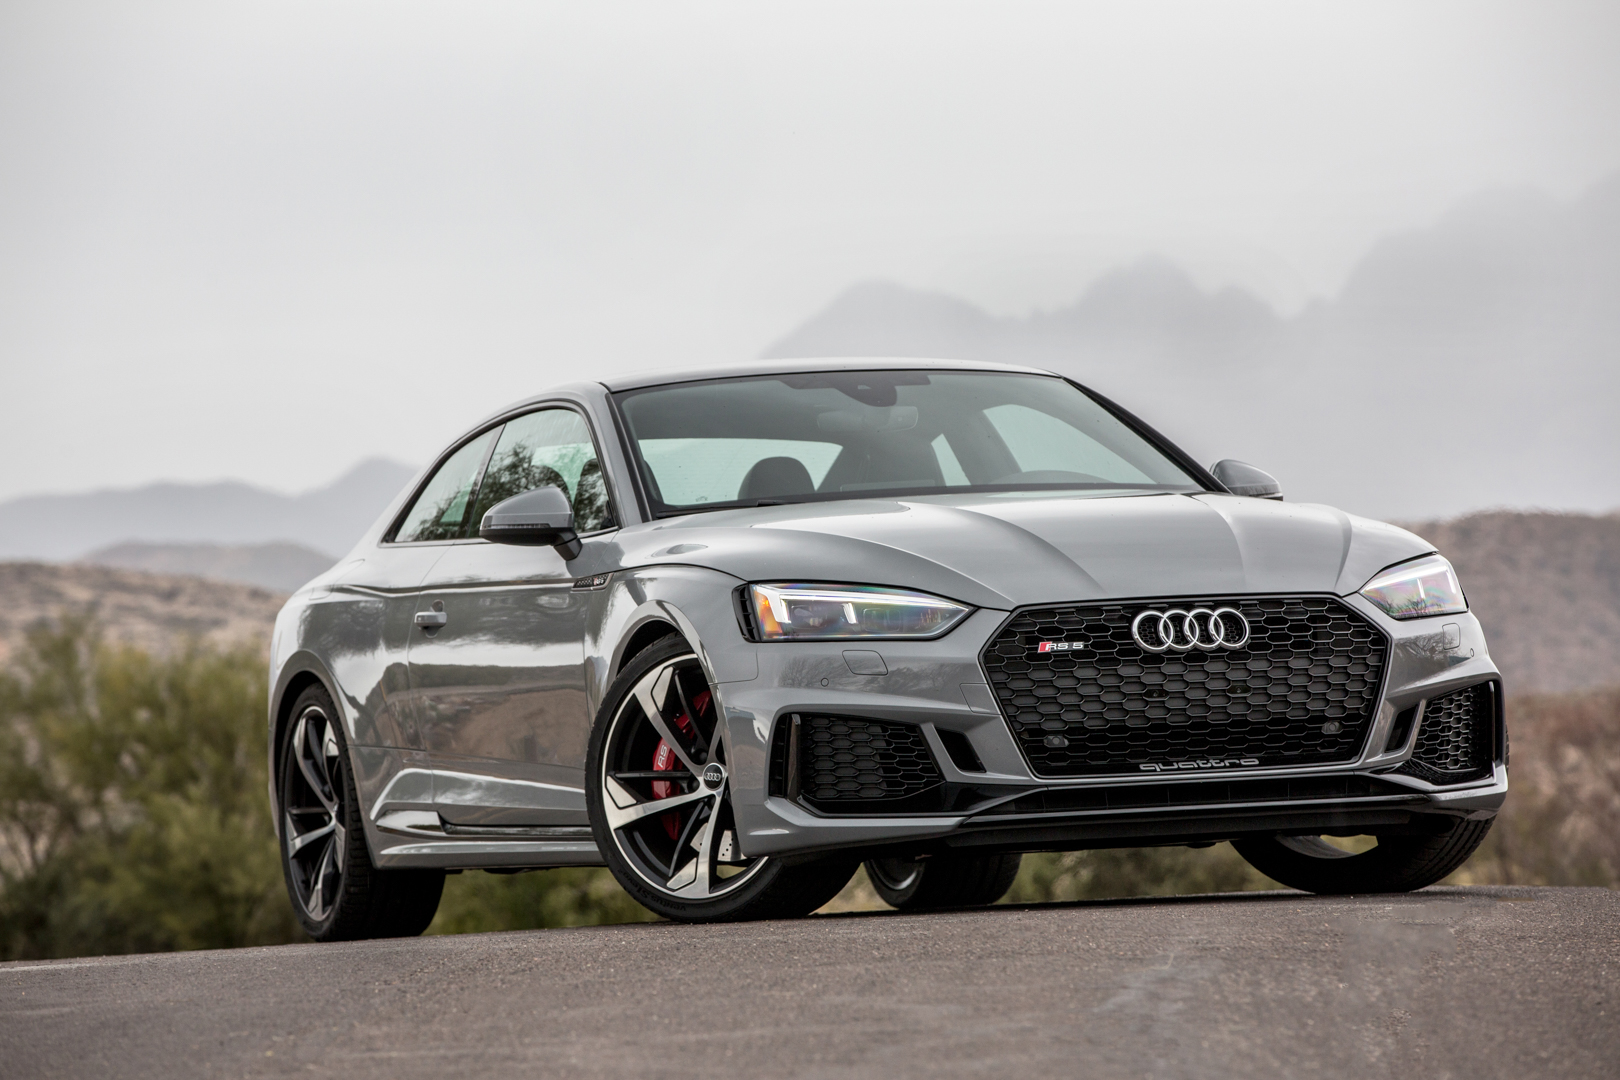 39 The Best 2020 Audi Rs5 Review and Release date